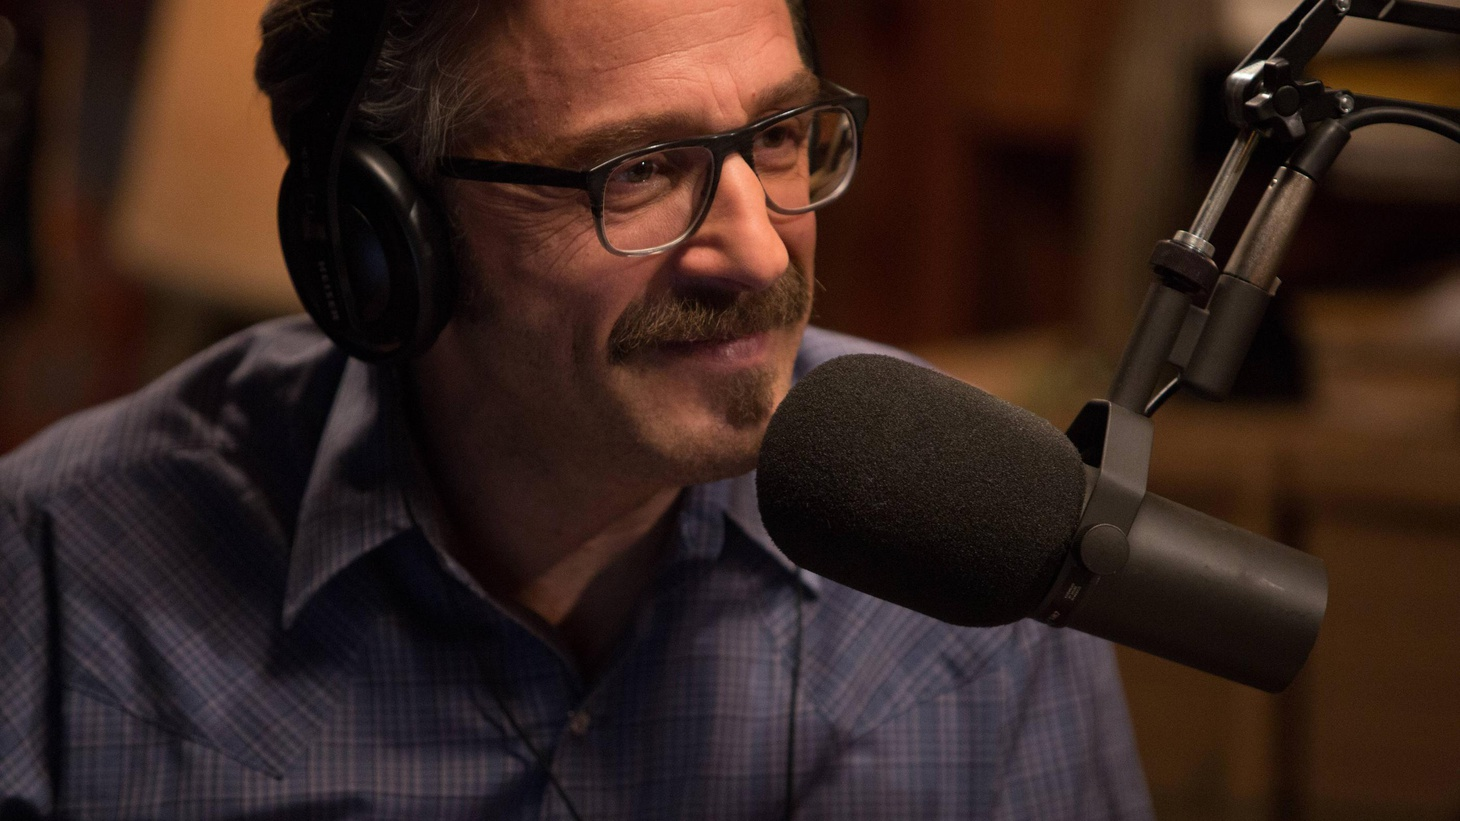 Marc Maron reinvigorated his lagging comedy career with his podcast WTF. Now he's translated that life into scripted TV comedy.